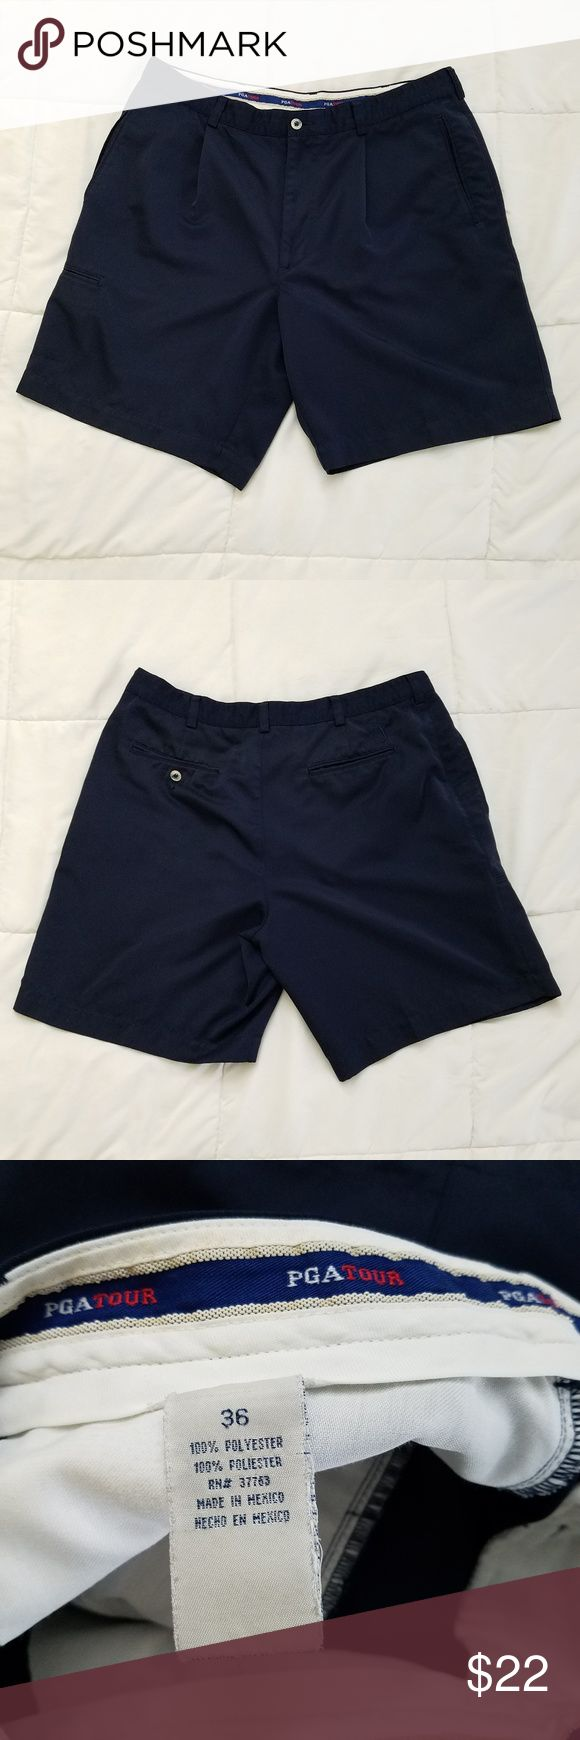 "PGA Tour Golf Shorts Mens 36 Navy Good Used Condition  Measurements are taken laid flat:  Inseam - 9"" Waist - 17.5""  Shorts comes from a smoke and pet free home. PGA Tour Shorts"